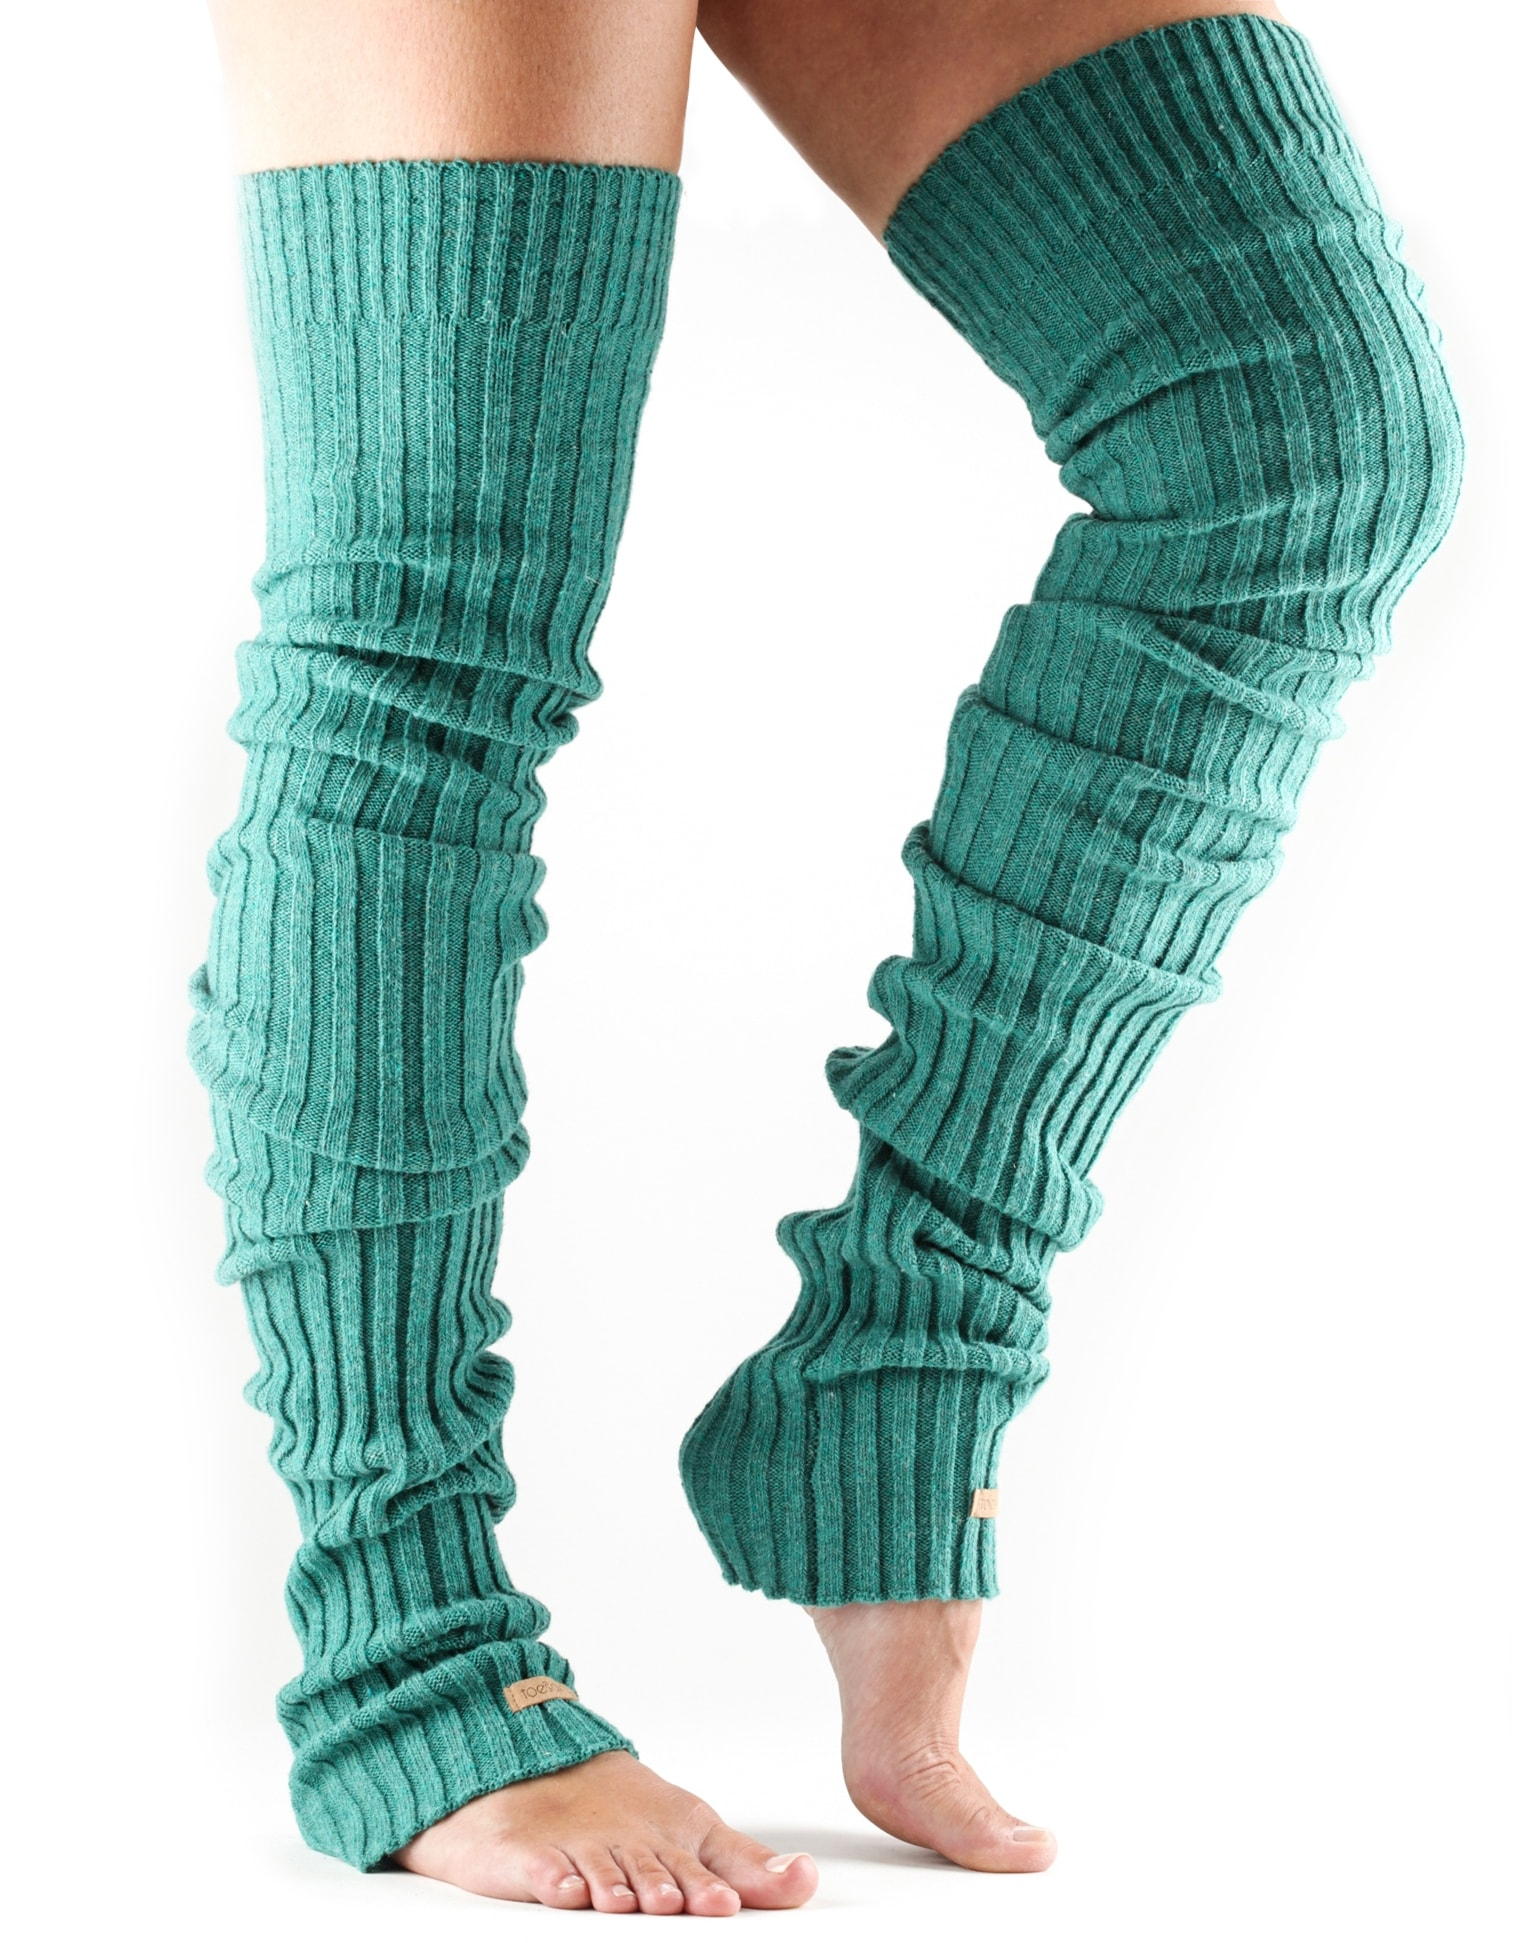 0e0f6cbe2 ToeSox Leg Warmers. Thigh High Coral